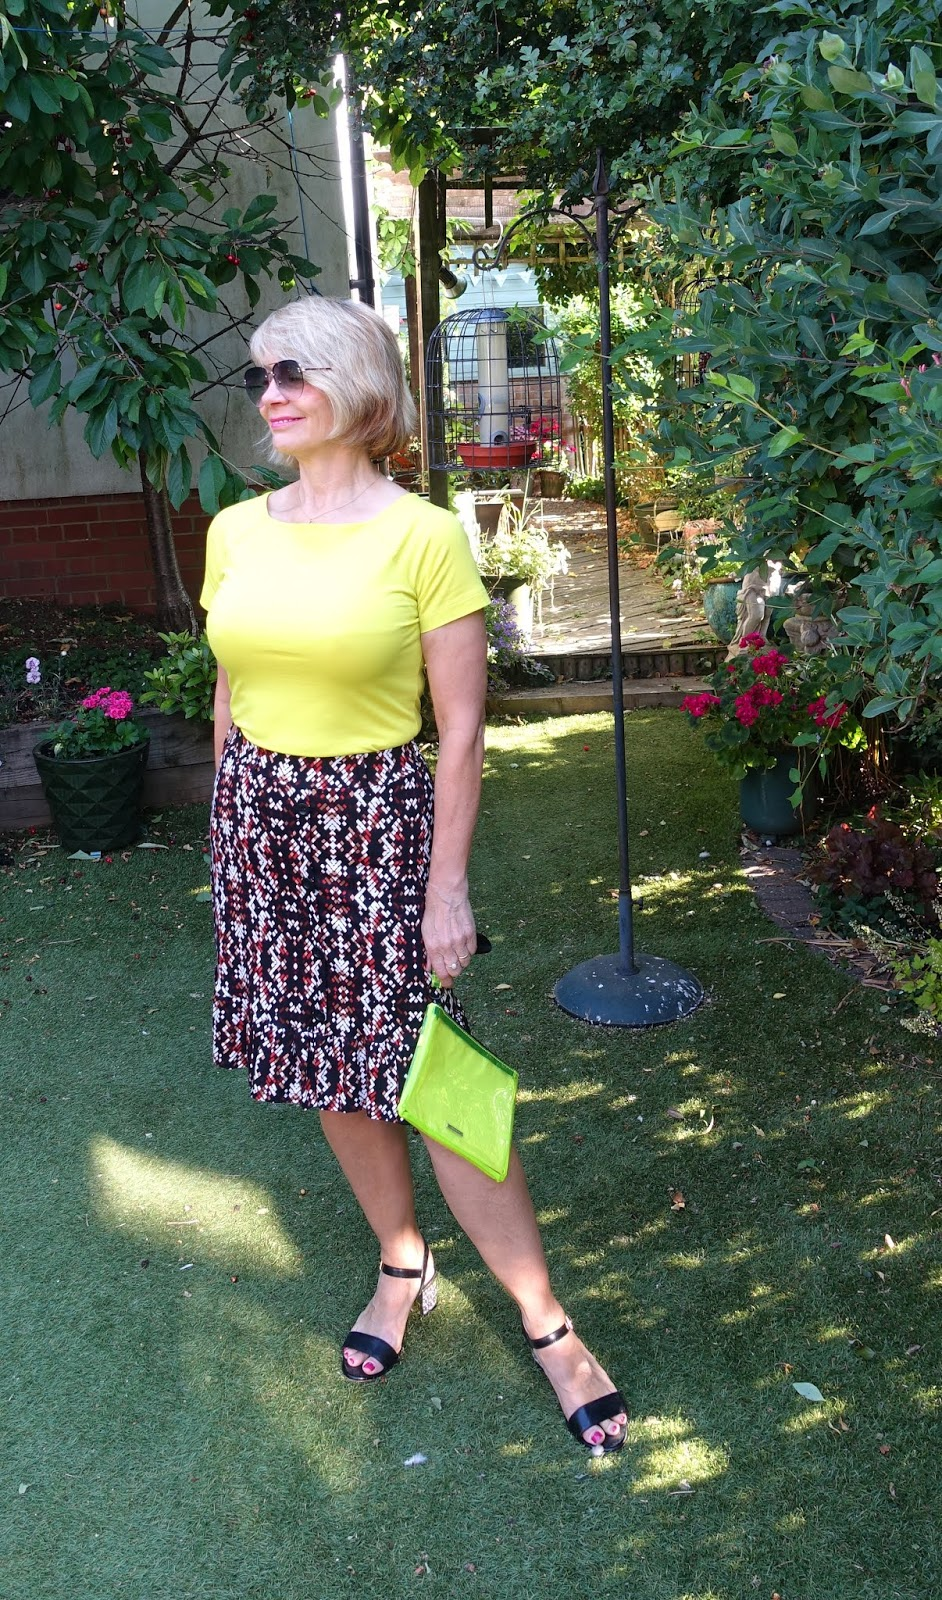 Gail Hanlon from Is This Mutton the over 50s style blog in brown and black geometric skirt worn with acid yellow top and black crystal heeled sandals